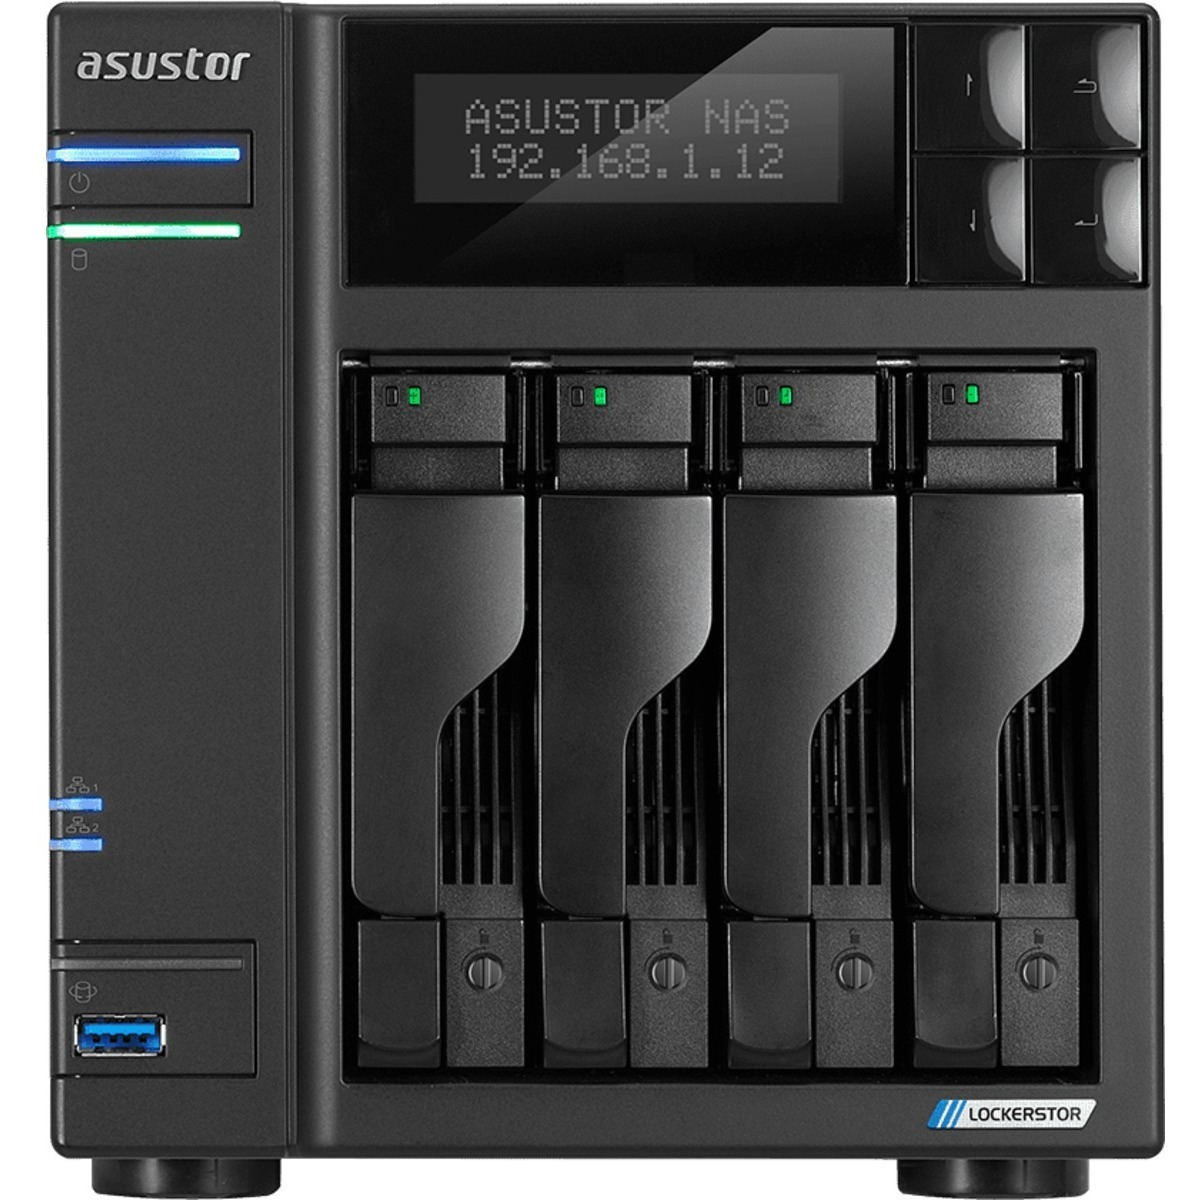 buy $1646 ASUSTOR AS6604T Lockerstor 4 30tb Desktop NAS - Network Attached Storage Device 3x10000gb Western Digital Red Plus WD101EFAX 3.5 IntelliPower SATA 6Gb/s HDD NAS Class Drives Installed - Burn-In Tested - FREE RAM UPGRADE - nas headquarters buy network attached storage server device das new raid-5 free shipping usa black friday cyber monday week month christmas holiday sale AS6604T Lockerstor 4